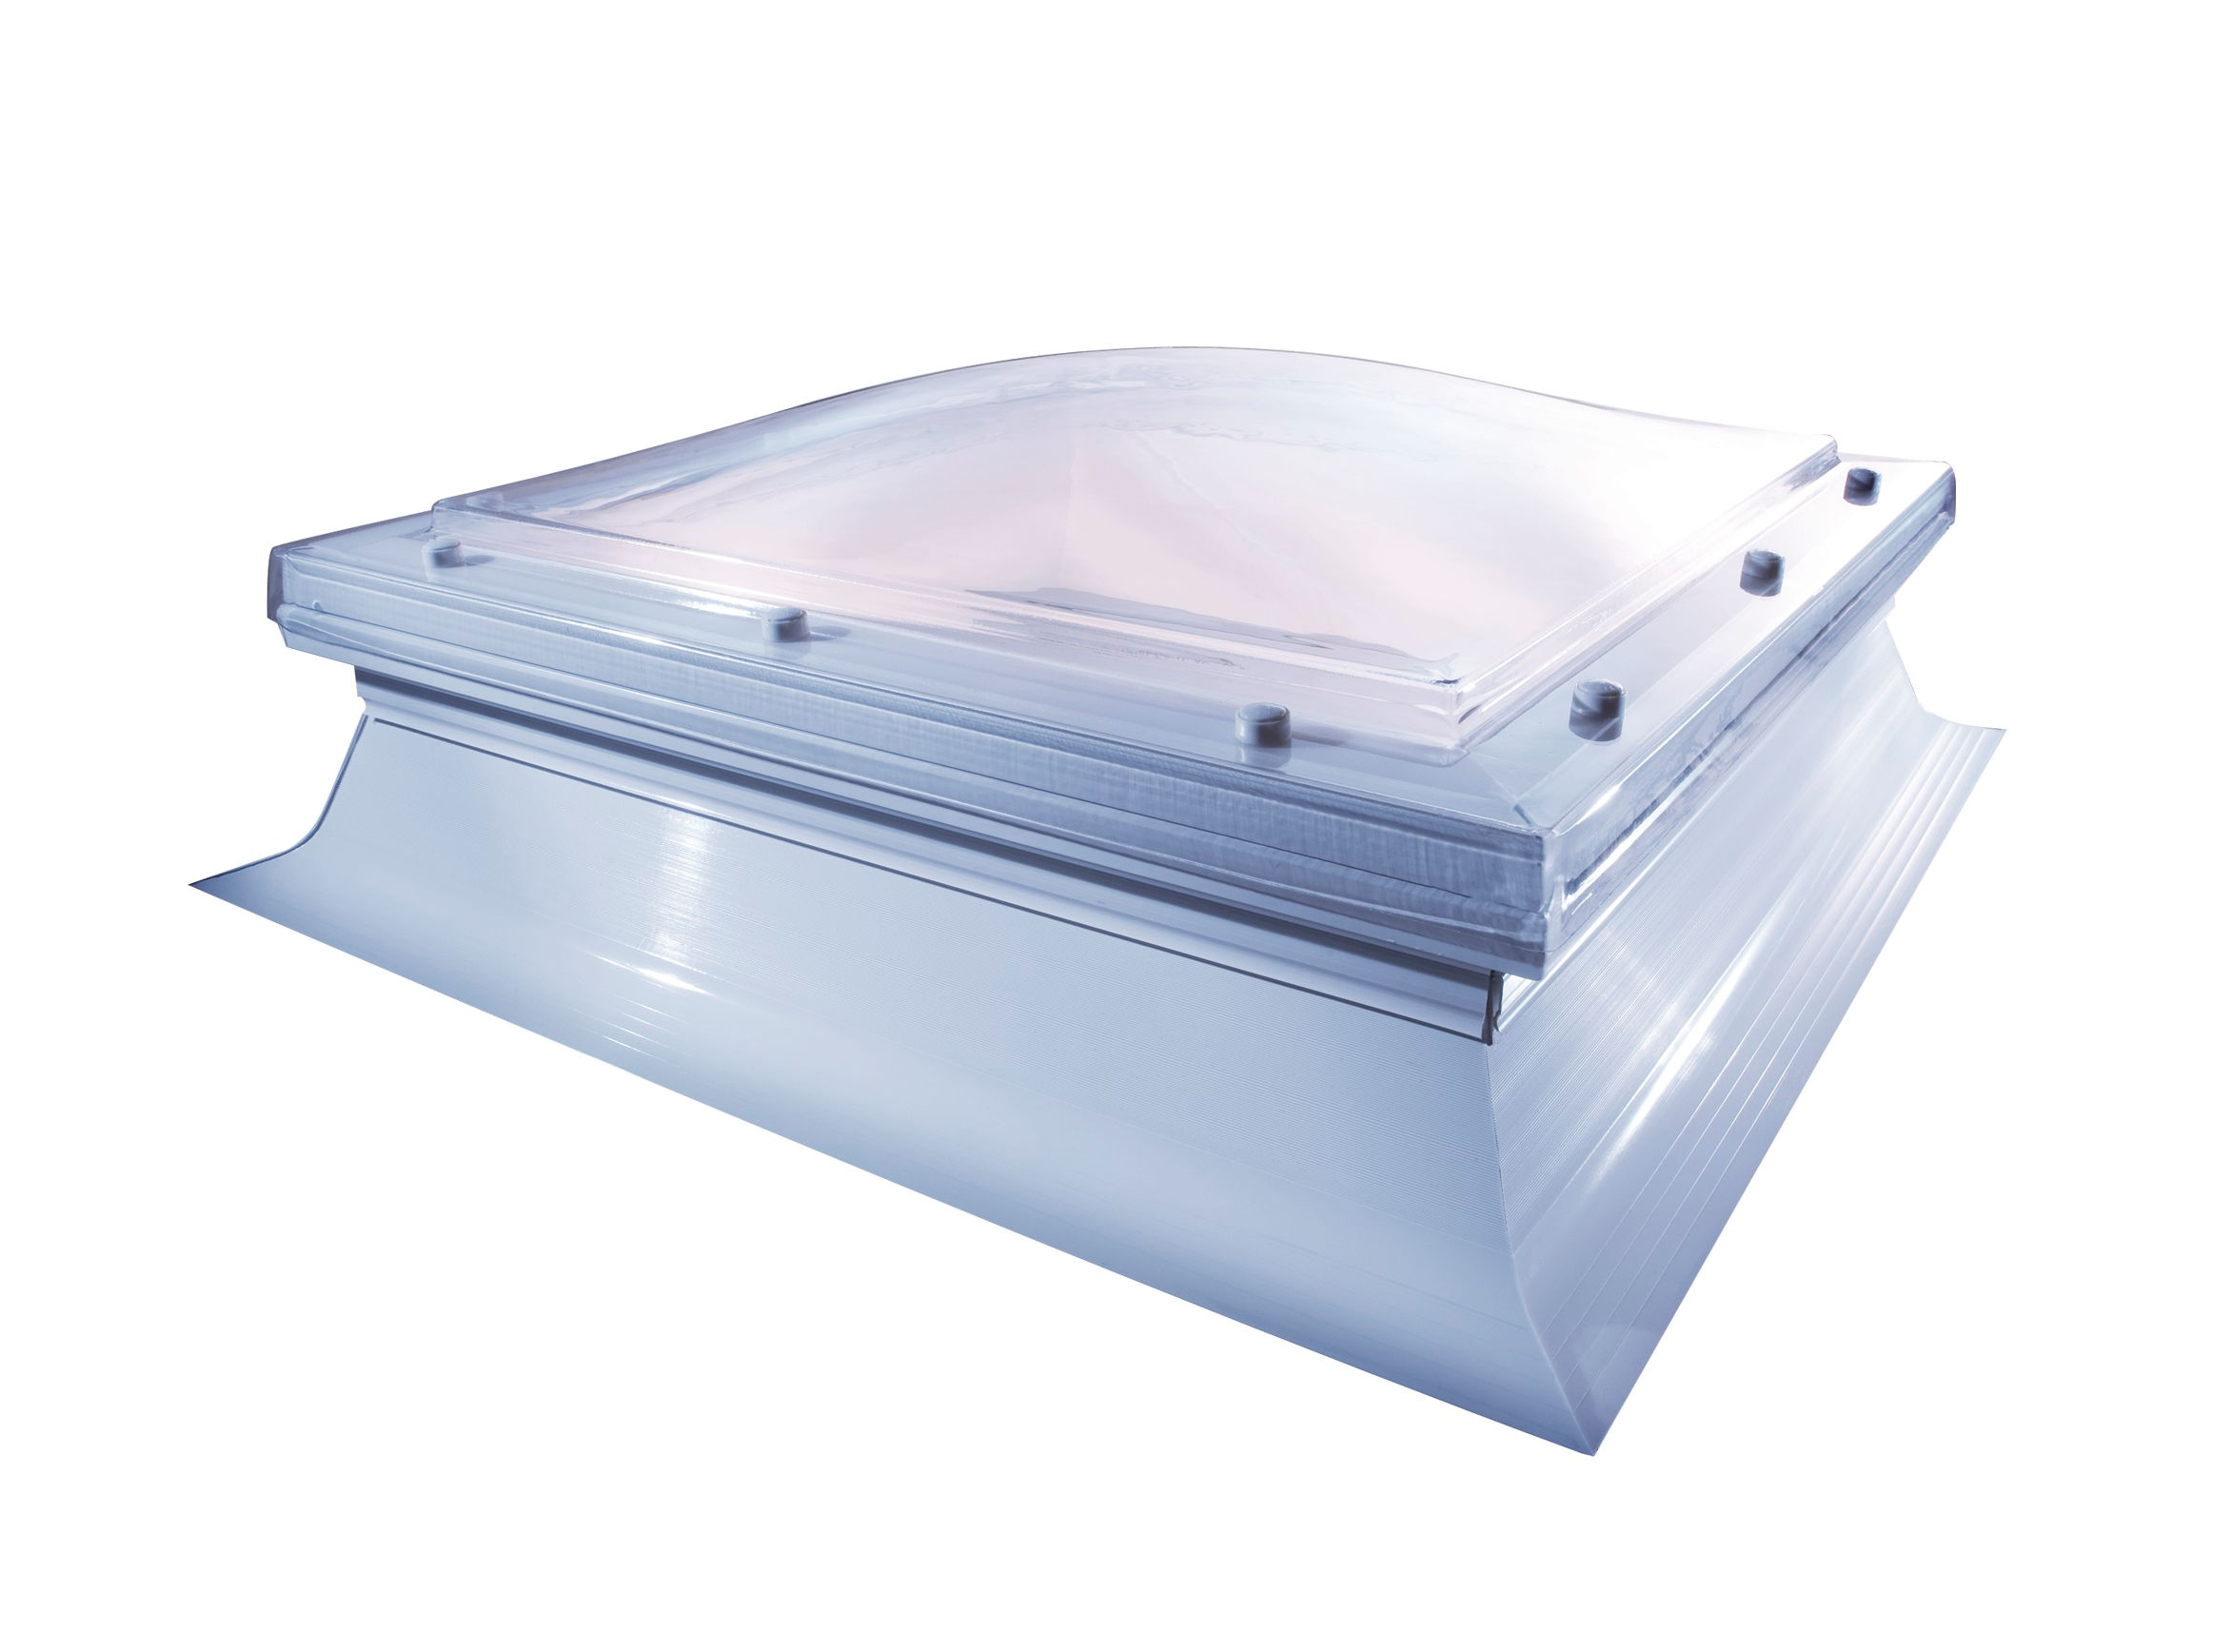 Mardome Trade Dome Rooflight PVC Kerb